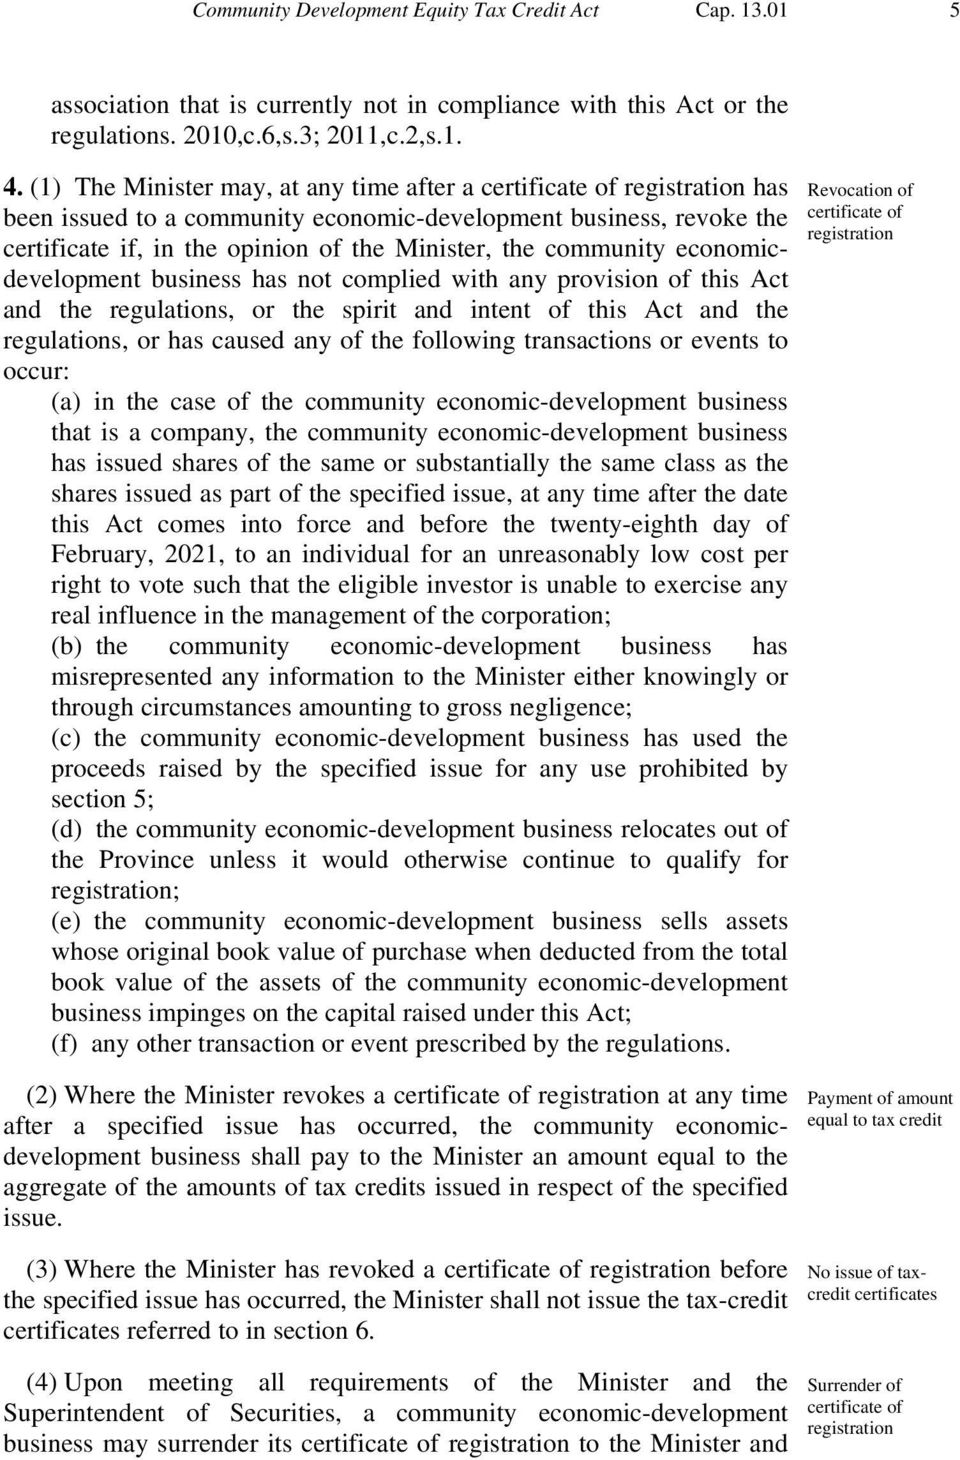 community economicdevelopment business has not complied with any provision of this Act and the regulations, or the spirit and intent of this Act and the regulations, or has caused any of the